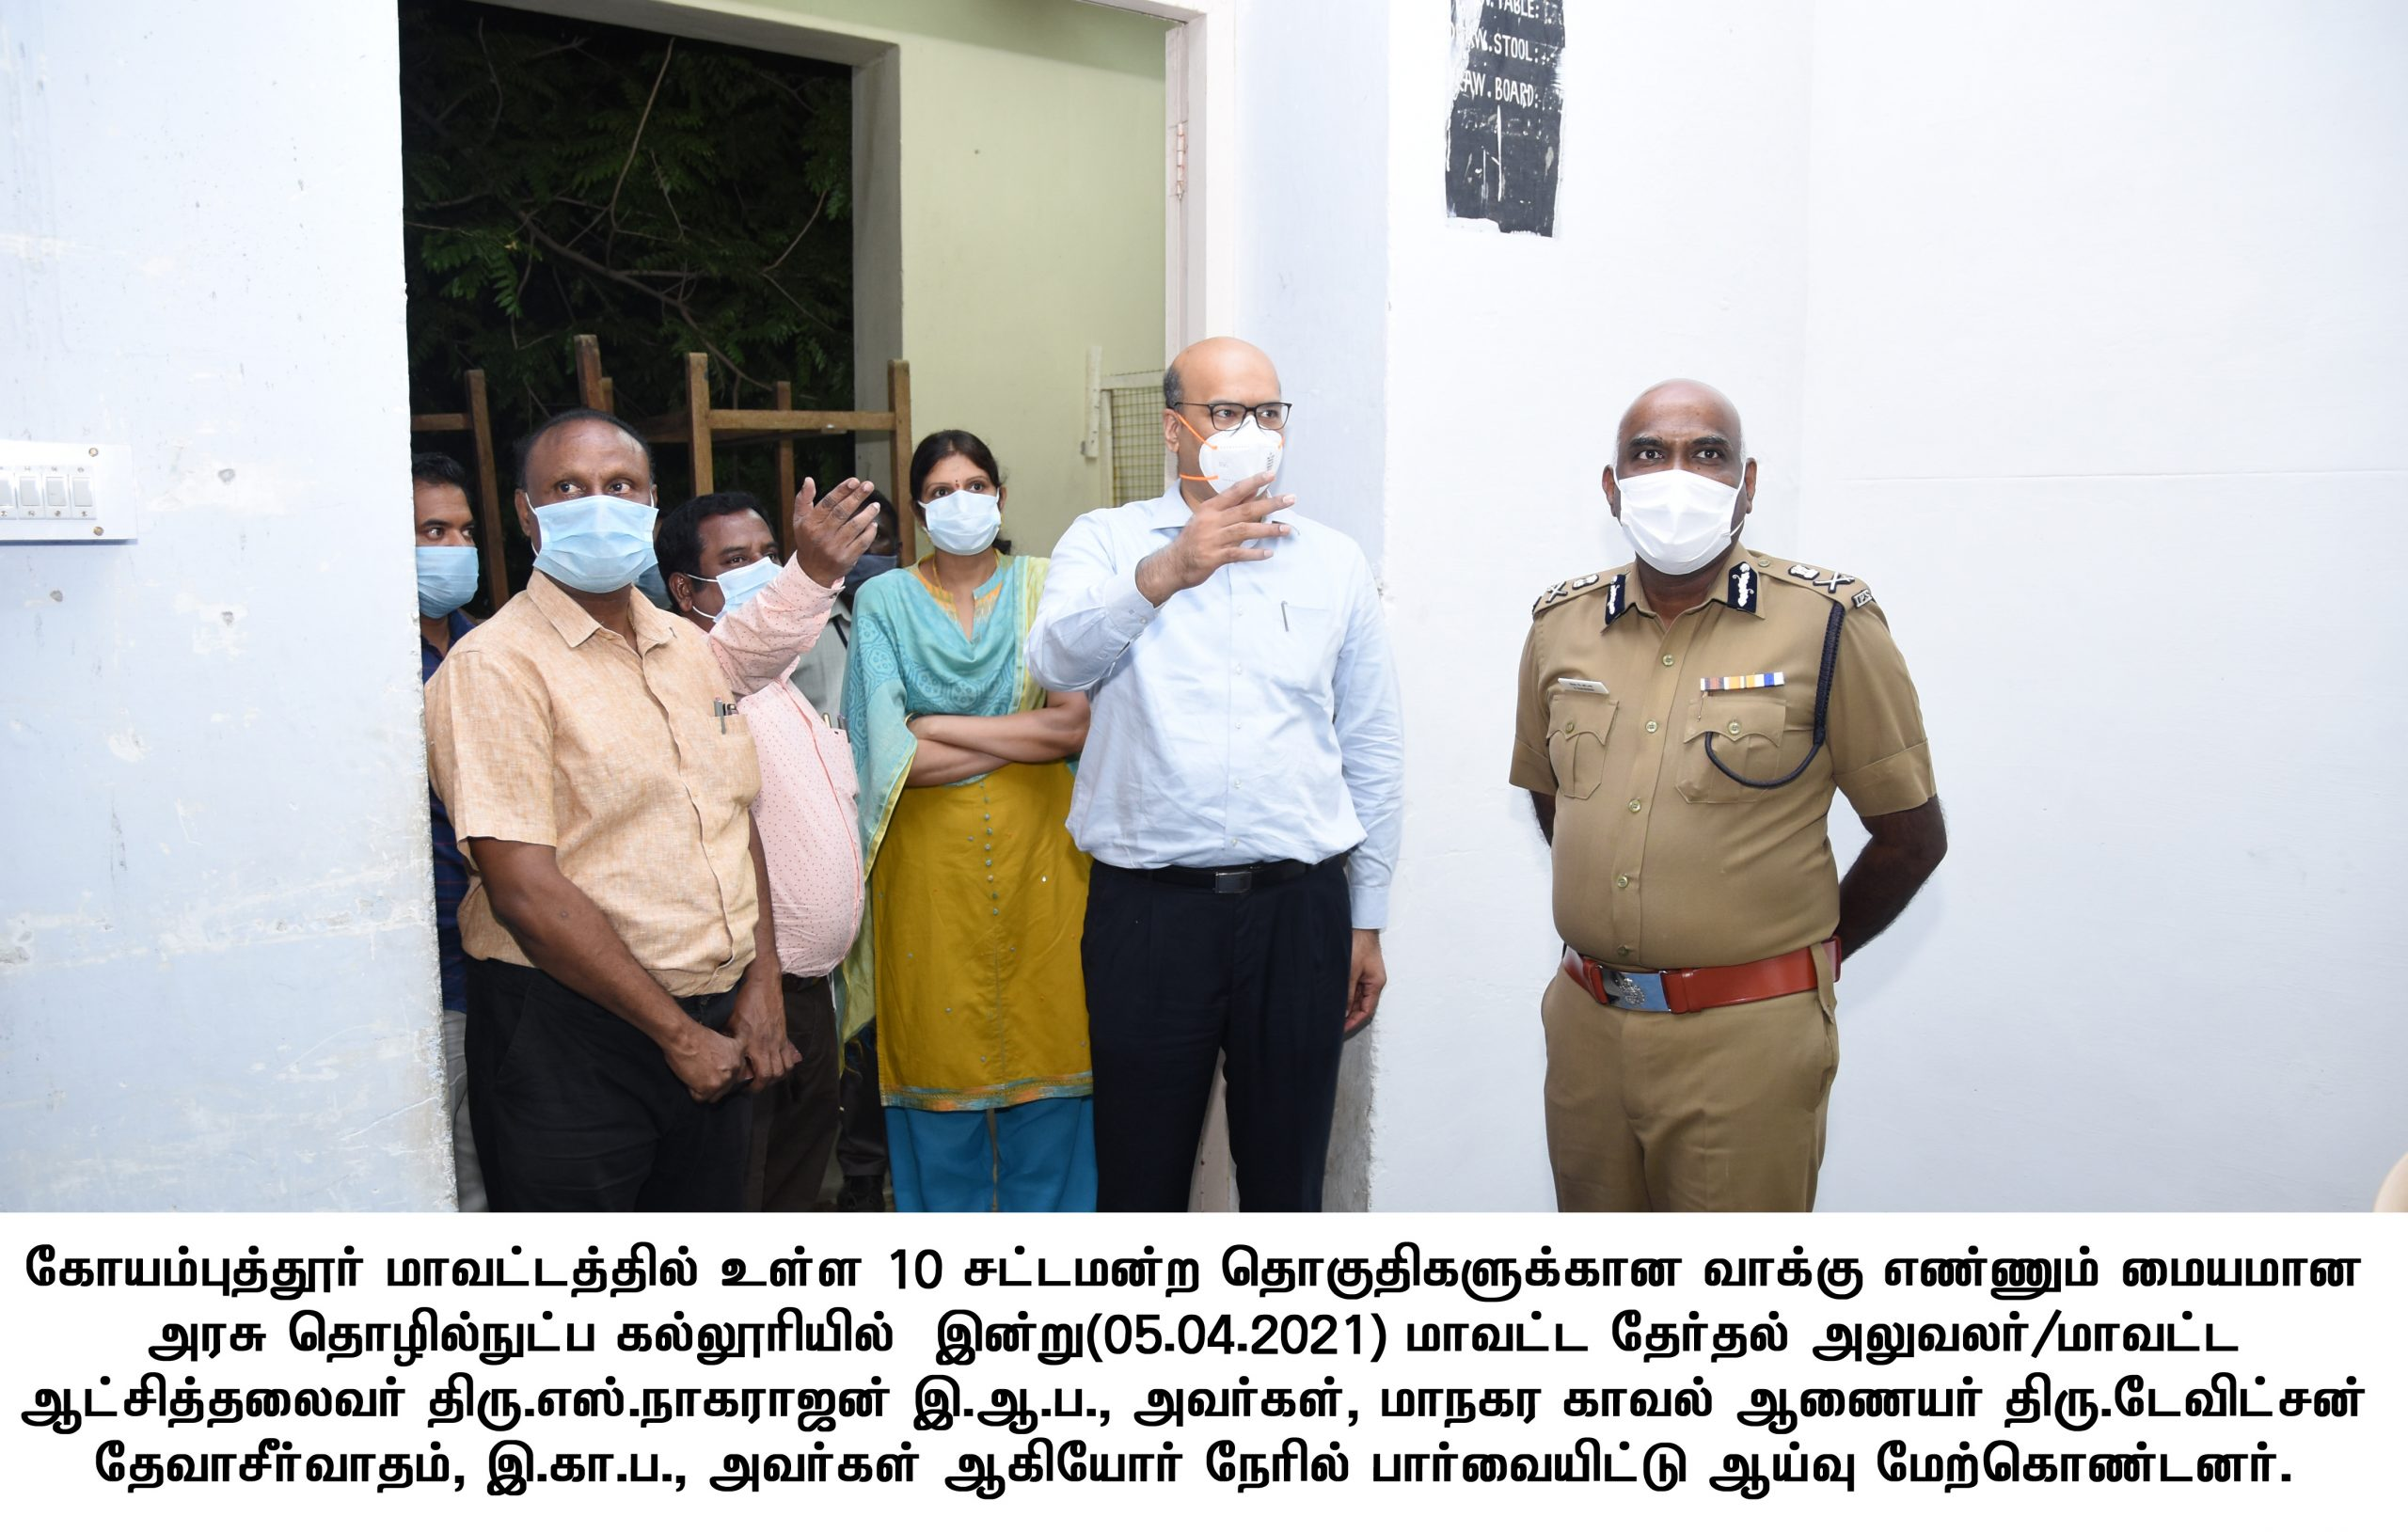 Counting Centre Inspection for Tamil Nadu State Legislative Assembly Election